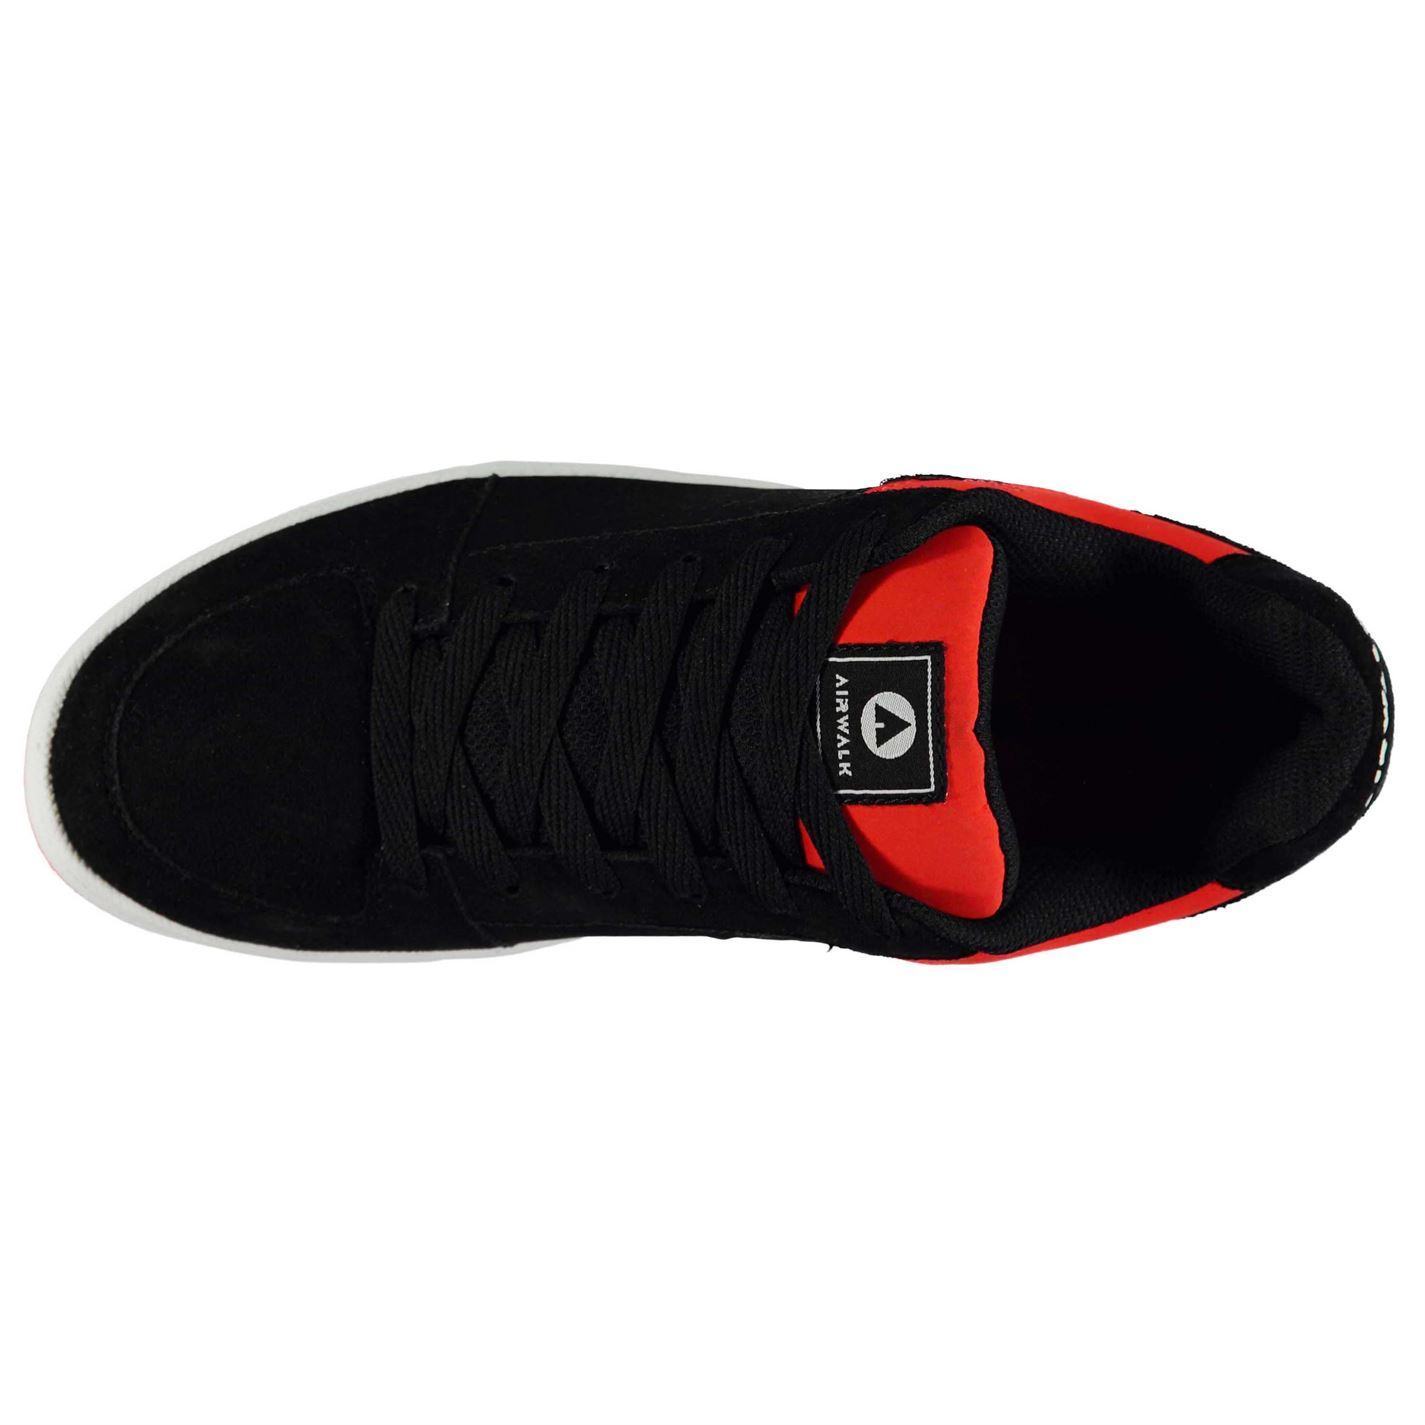 Airwalk-Mens-Brock-Skate-Shoes-Lace-Up-Suede-Accents-Sport-Casual-Trainers thumbnail 35